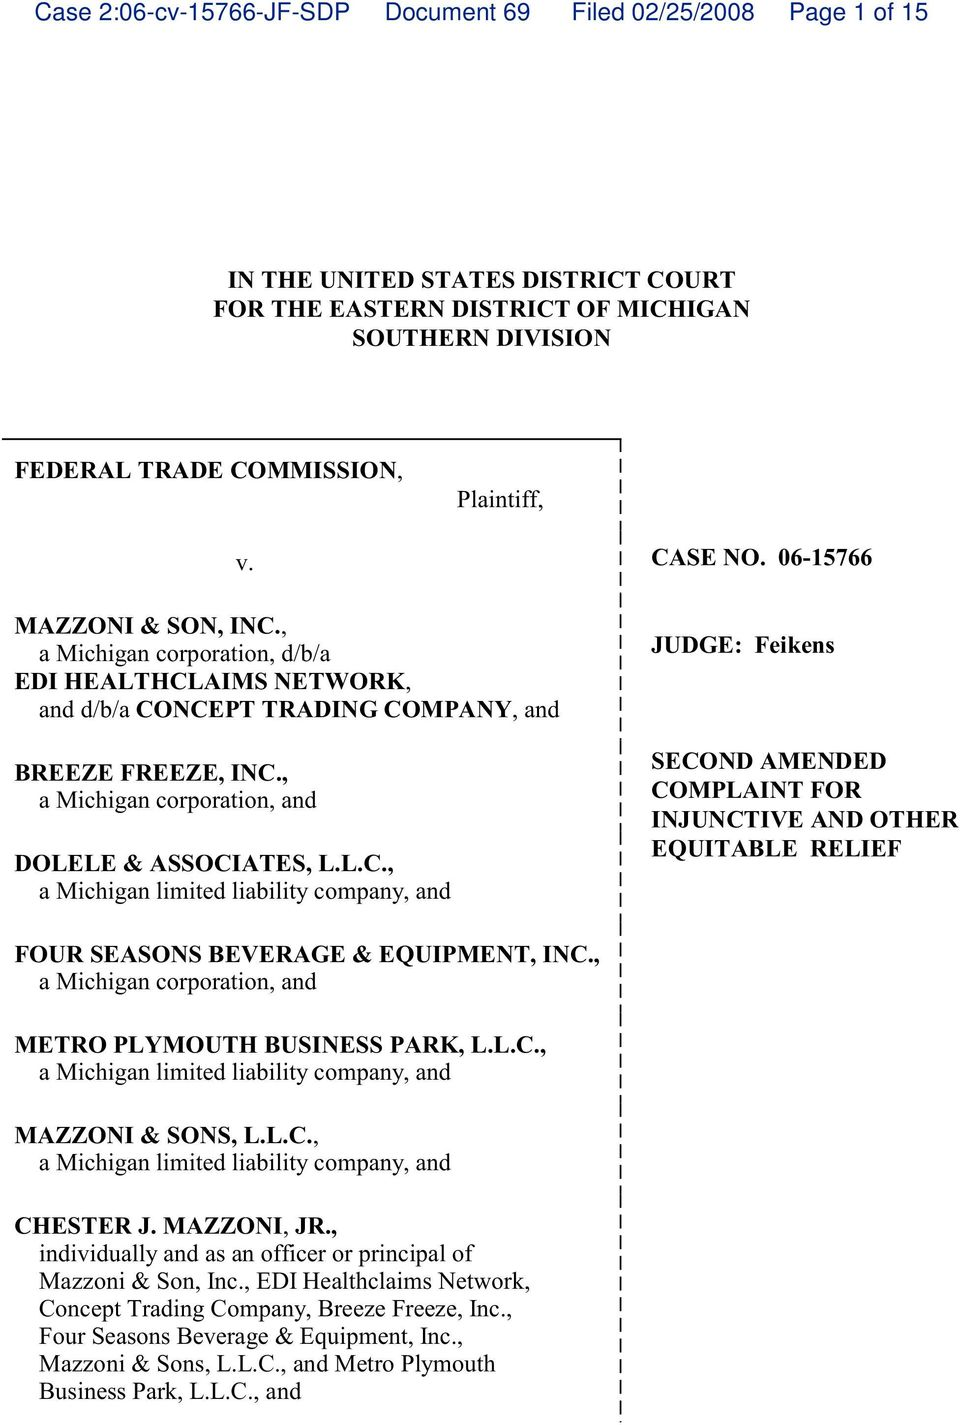 06-15766 JUDGE: Feikens SECOND AMENDED COMPLAINT FOR INJUNCTIVE AND OTHER EQUITABLE RELIEF FOUR SEASONS BEVERAGE & EQUIPMENT, INC., a Michigan corporation, and METRO PLYMOUTH BUSINESS PARK, L.L.C., a Michigan limited liability company, and MAZZONI & SONS, L.